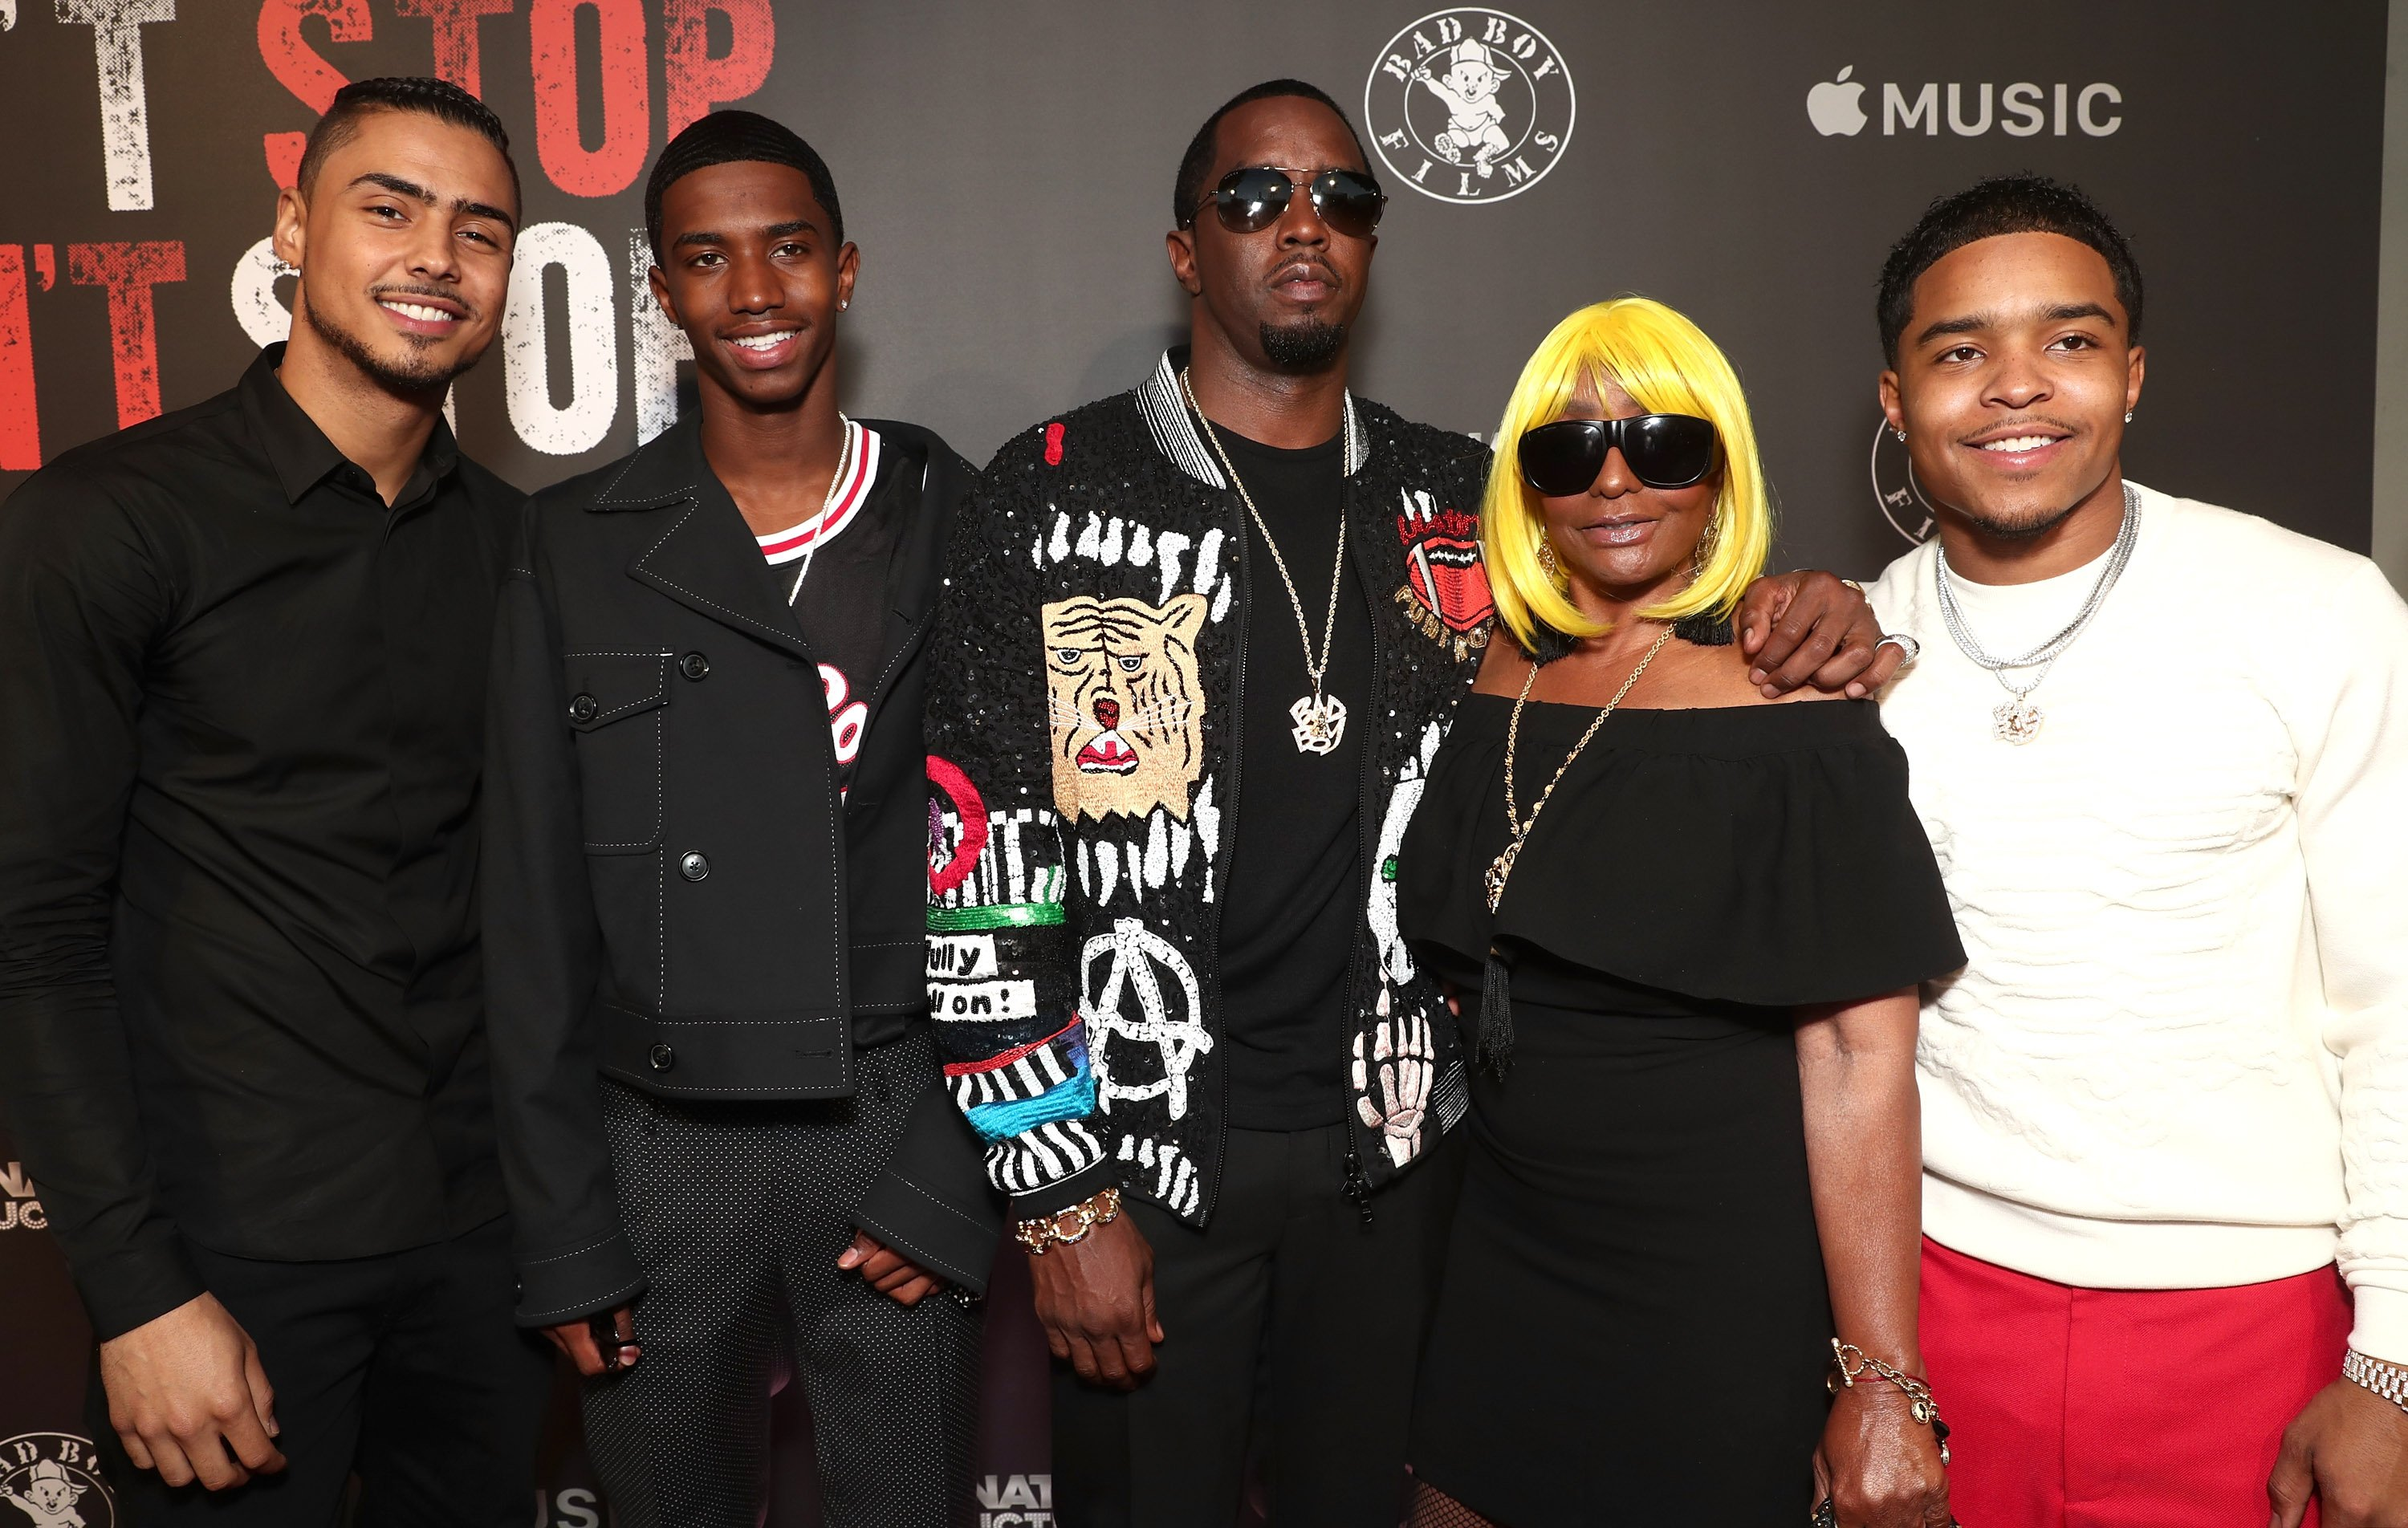 """(L-R)Quincy Brown, Christian Combs, Sean """"Diddy"""" Combs, Janice Combs & Justin Combs at the Premiere of """"Can't Stop Won't Stop"""" on June 21, 2017 in California 